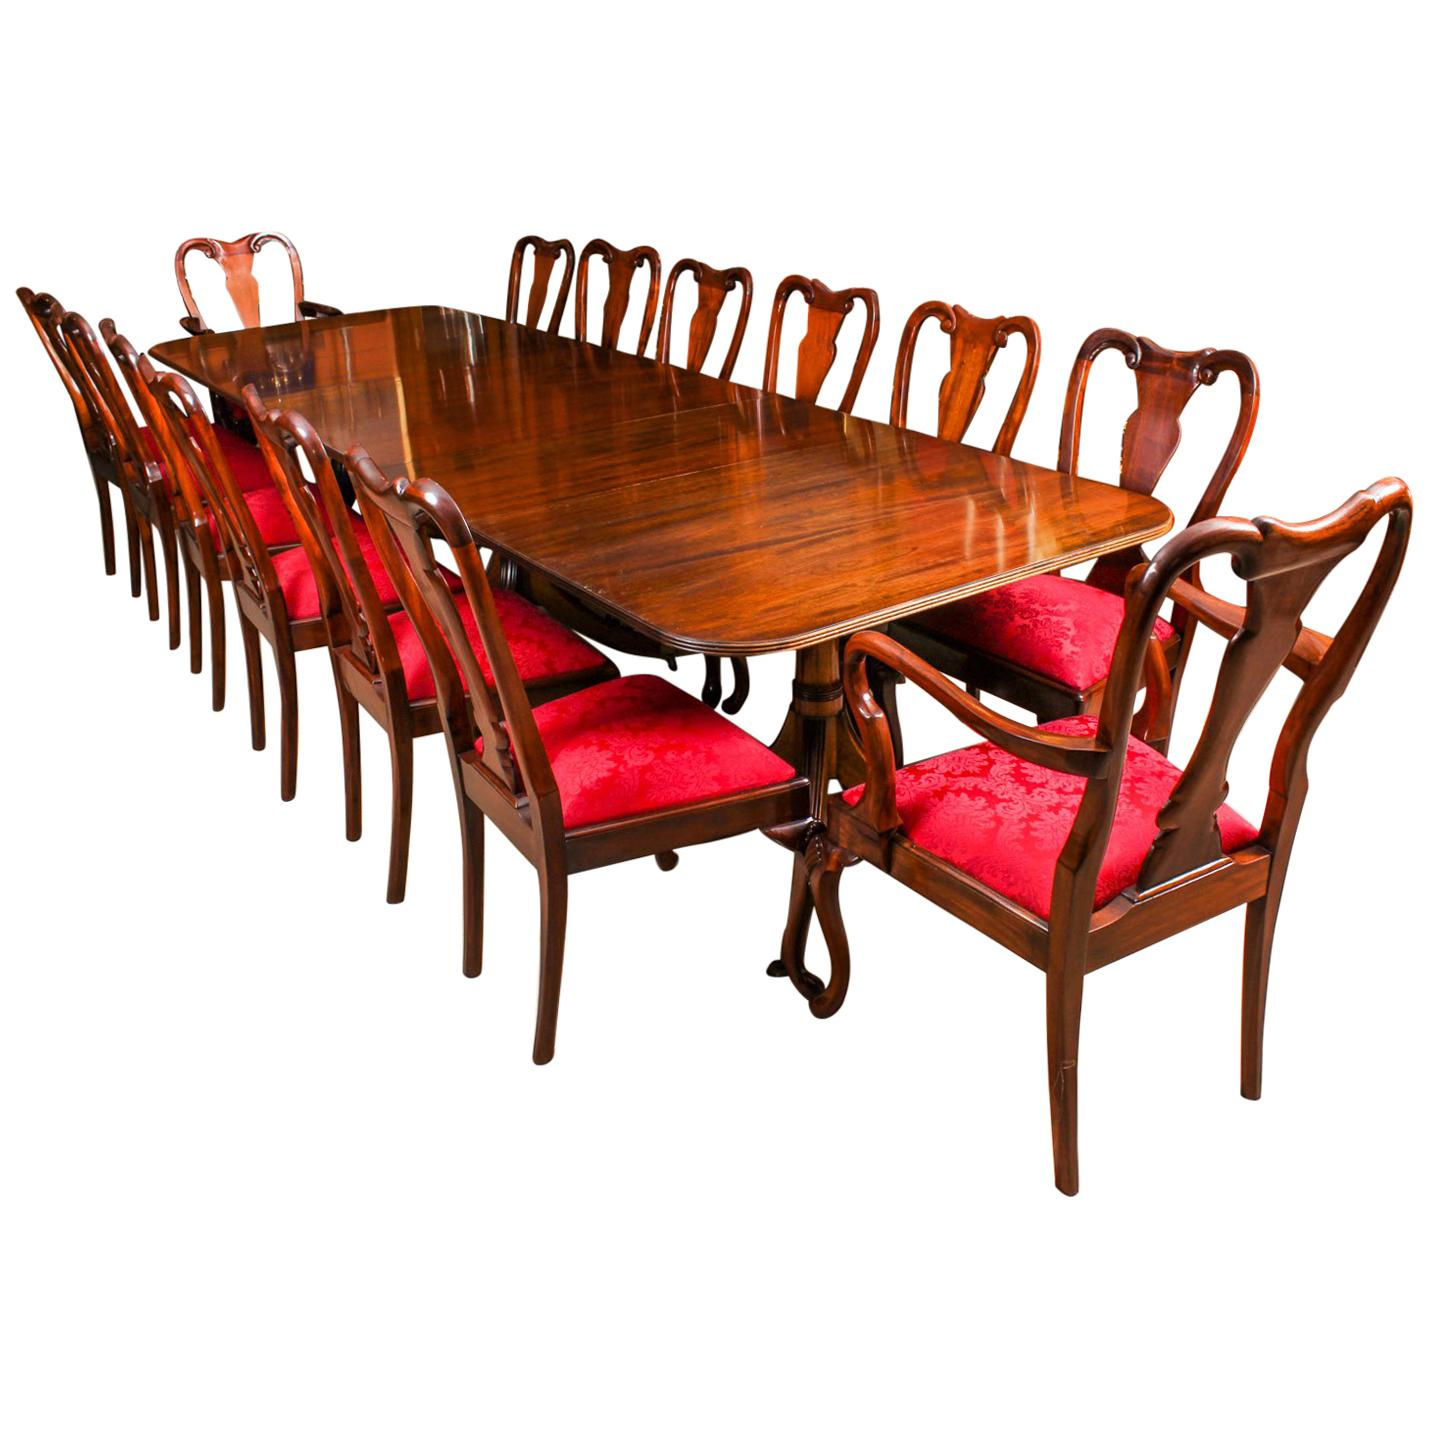 fe1425c919bc84 1980s Dining Room Sets - 25 For Sale at 1stdibs